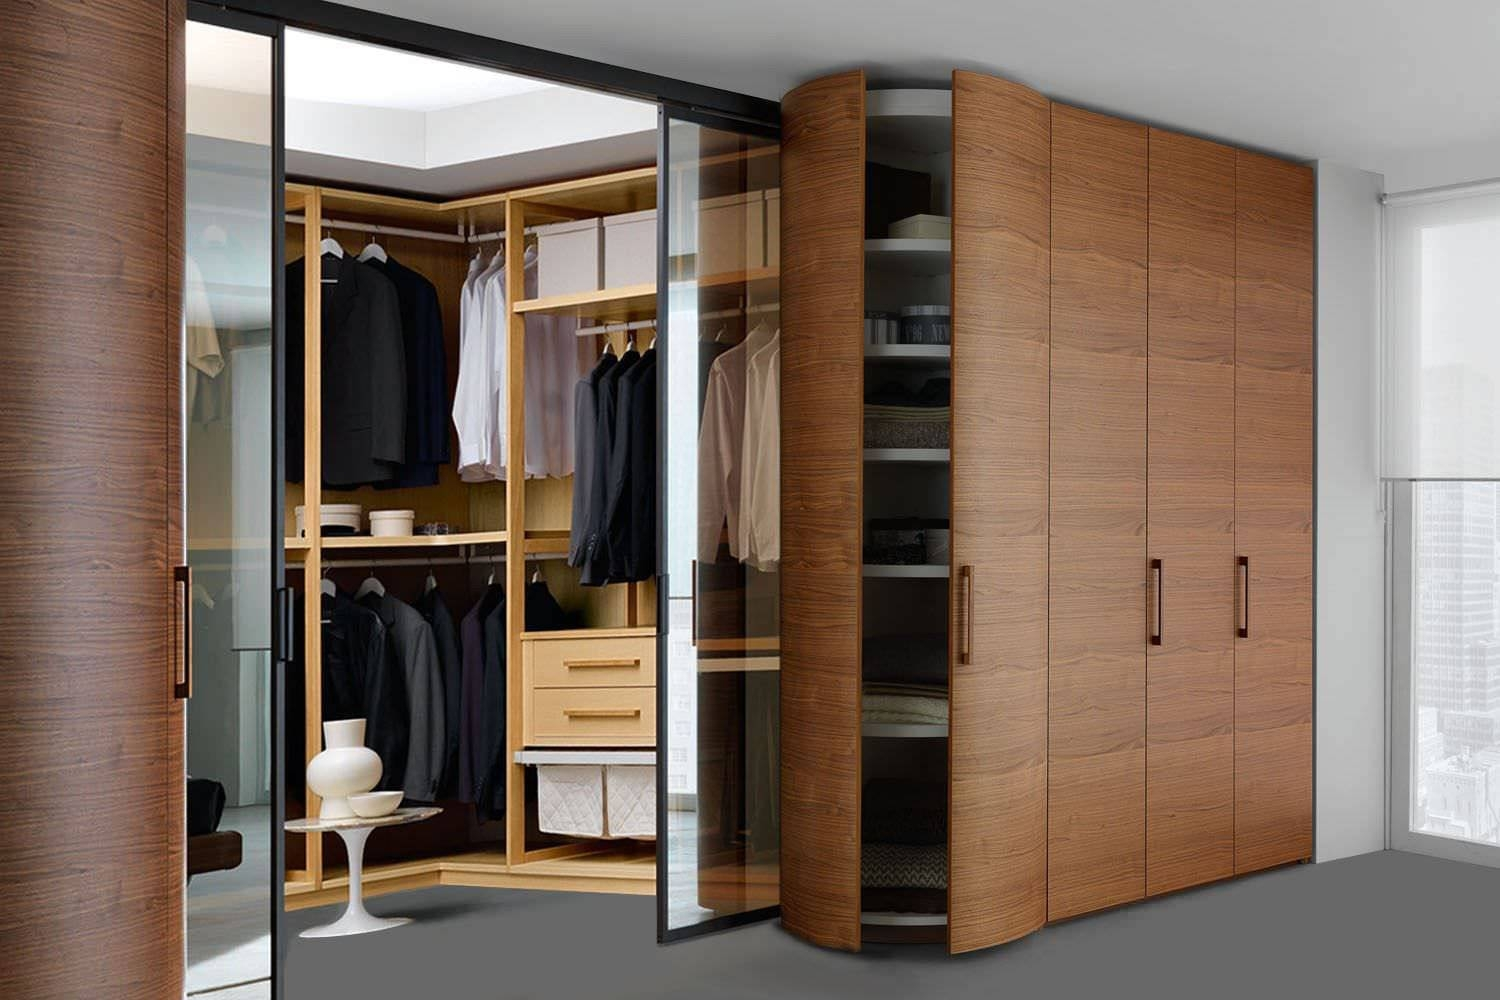 Corner Wardrobe / Contemporary / Wooden / Glossy Lacquered Wood Inside Curved Corner Wardrobe Doors (View 12 of 30)